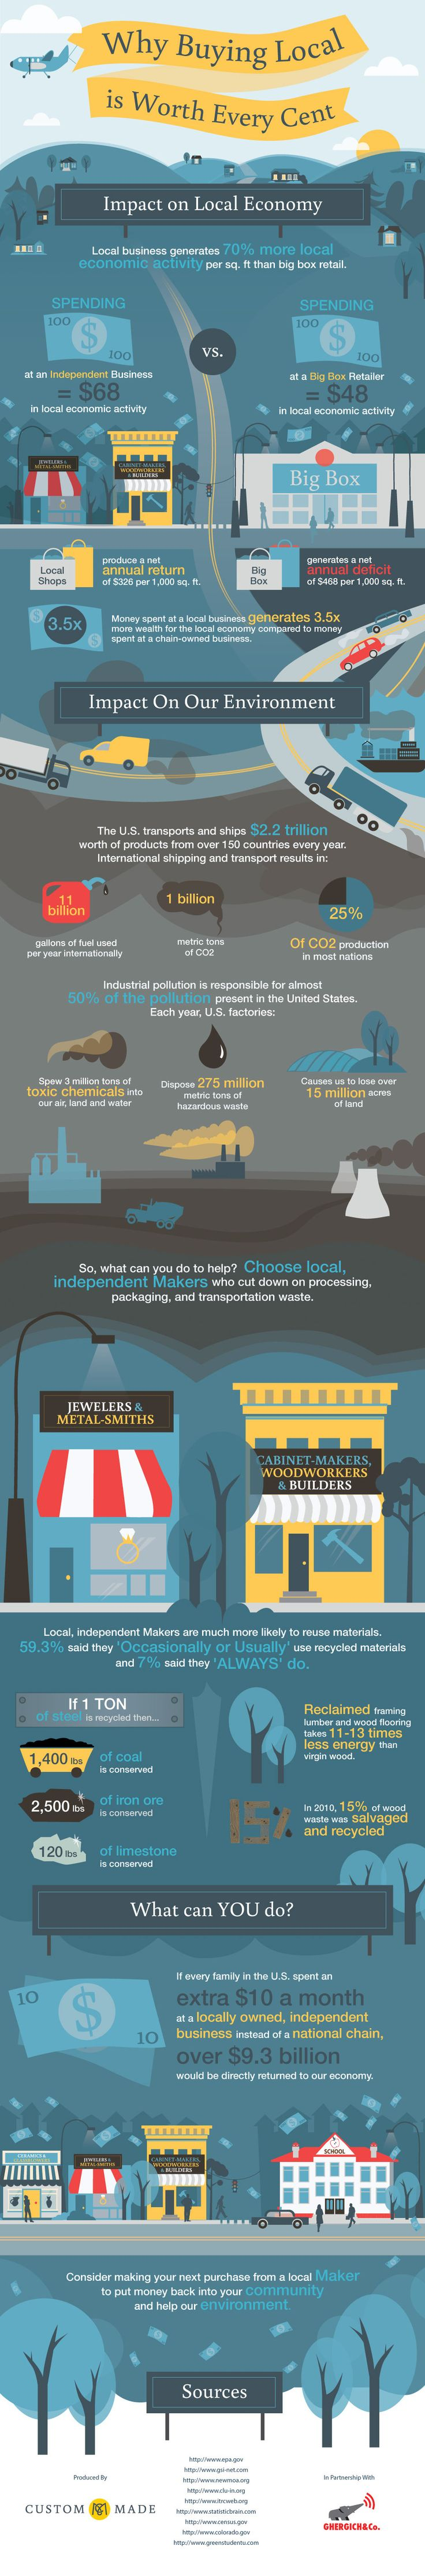 #INFOgraphic > Support Local Business: This presentation explains the importance of doing our shopping from local stores and businesses rather than big national chains and the benefits this movement produces for local communities and the environment. Discover how turning local makes a difference.  > http://infographicsmania.com/support-local-business/